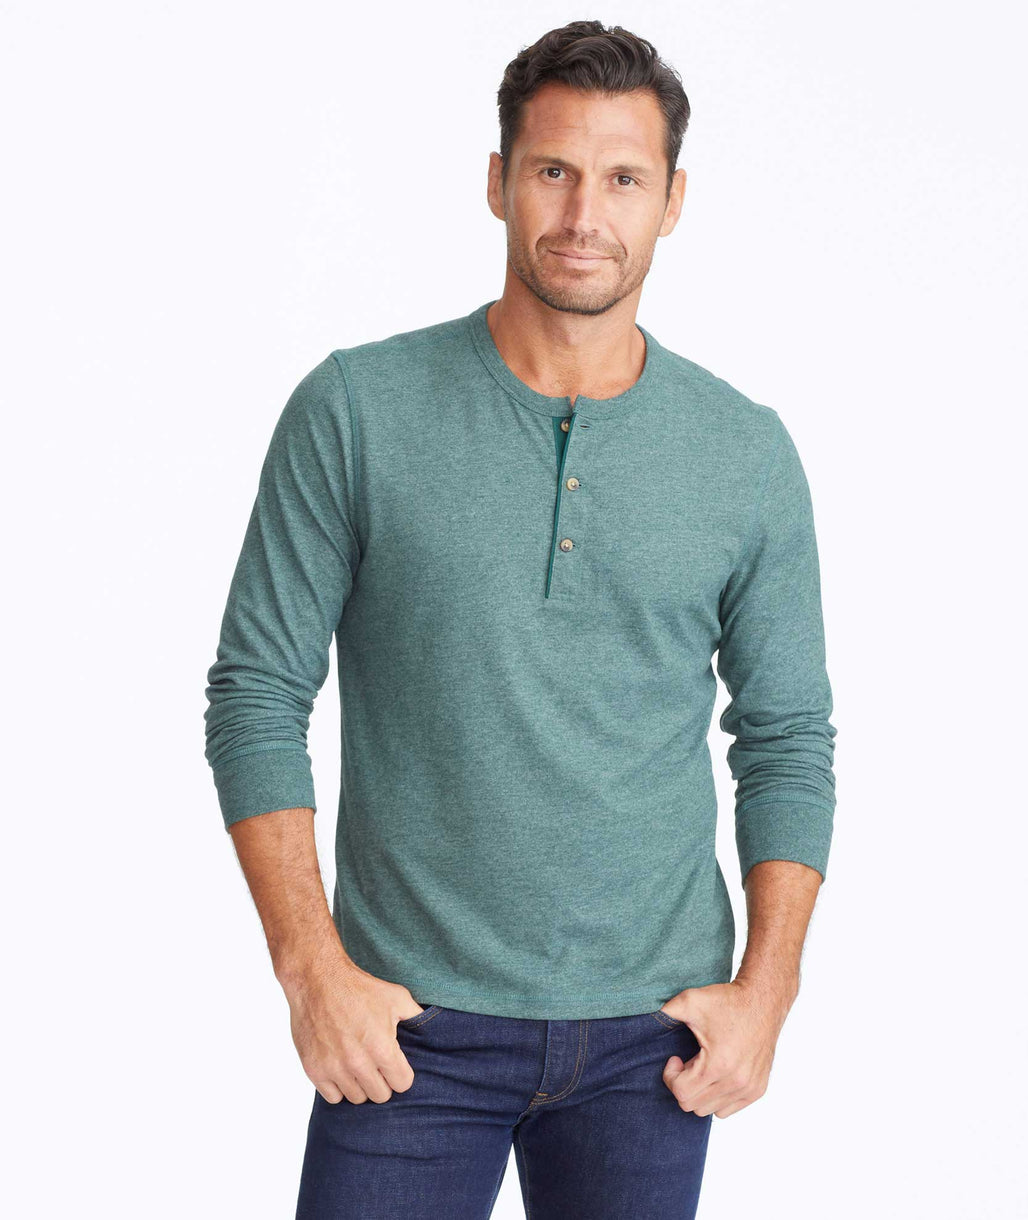 Model wearing a Bright Green Ultrasoft Long-Sleeve Henley